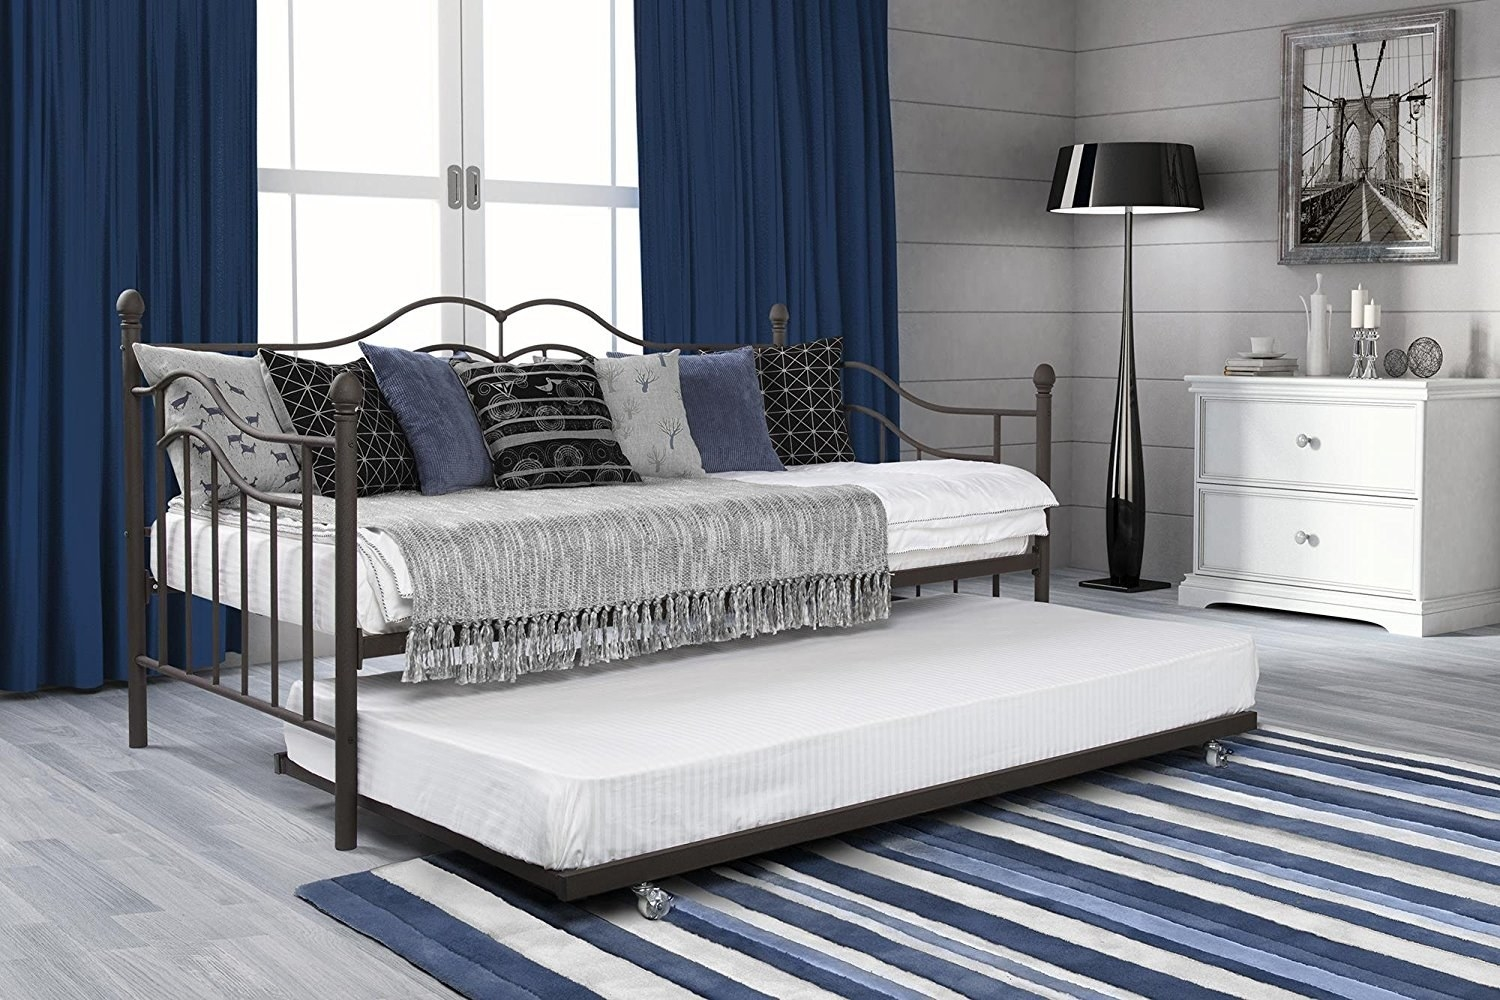 side view of the black metal day bed and trundle